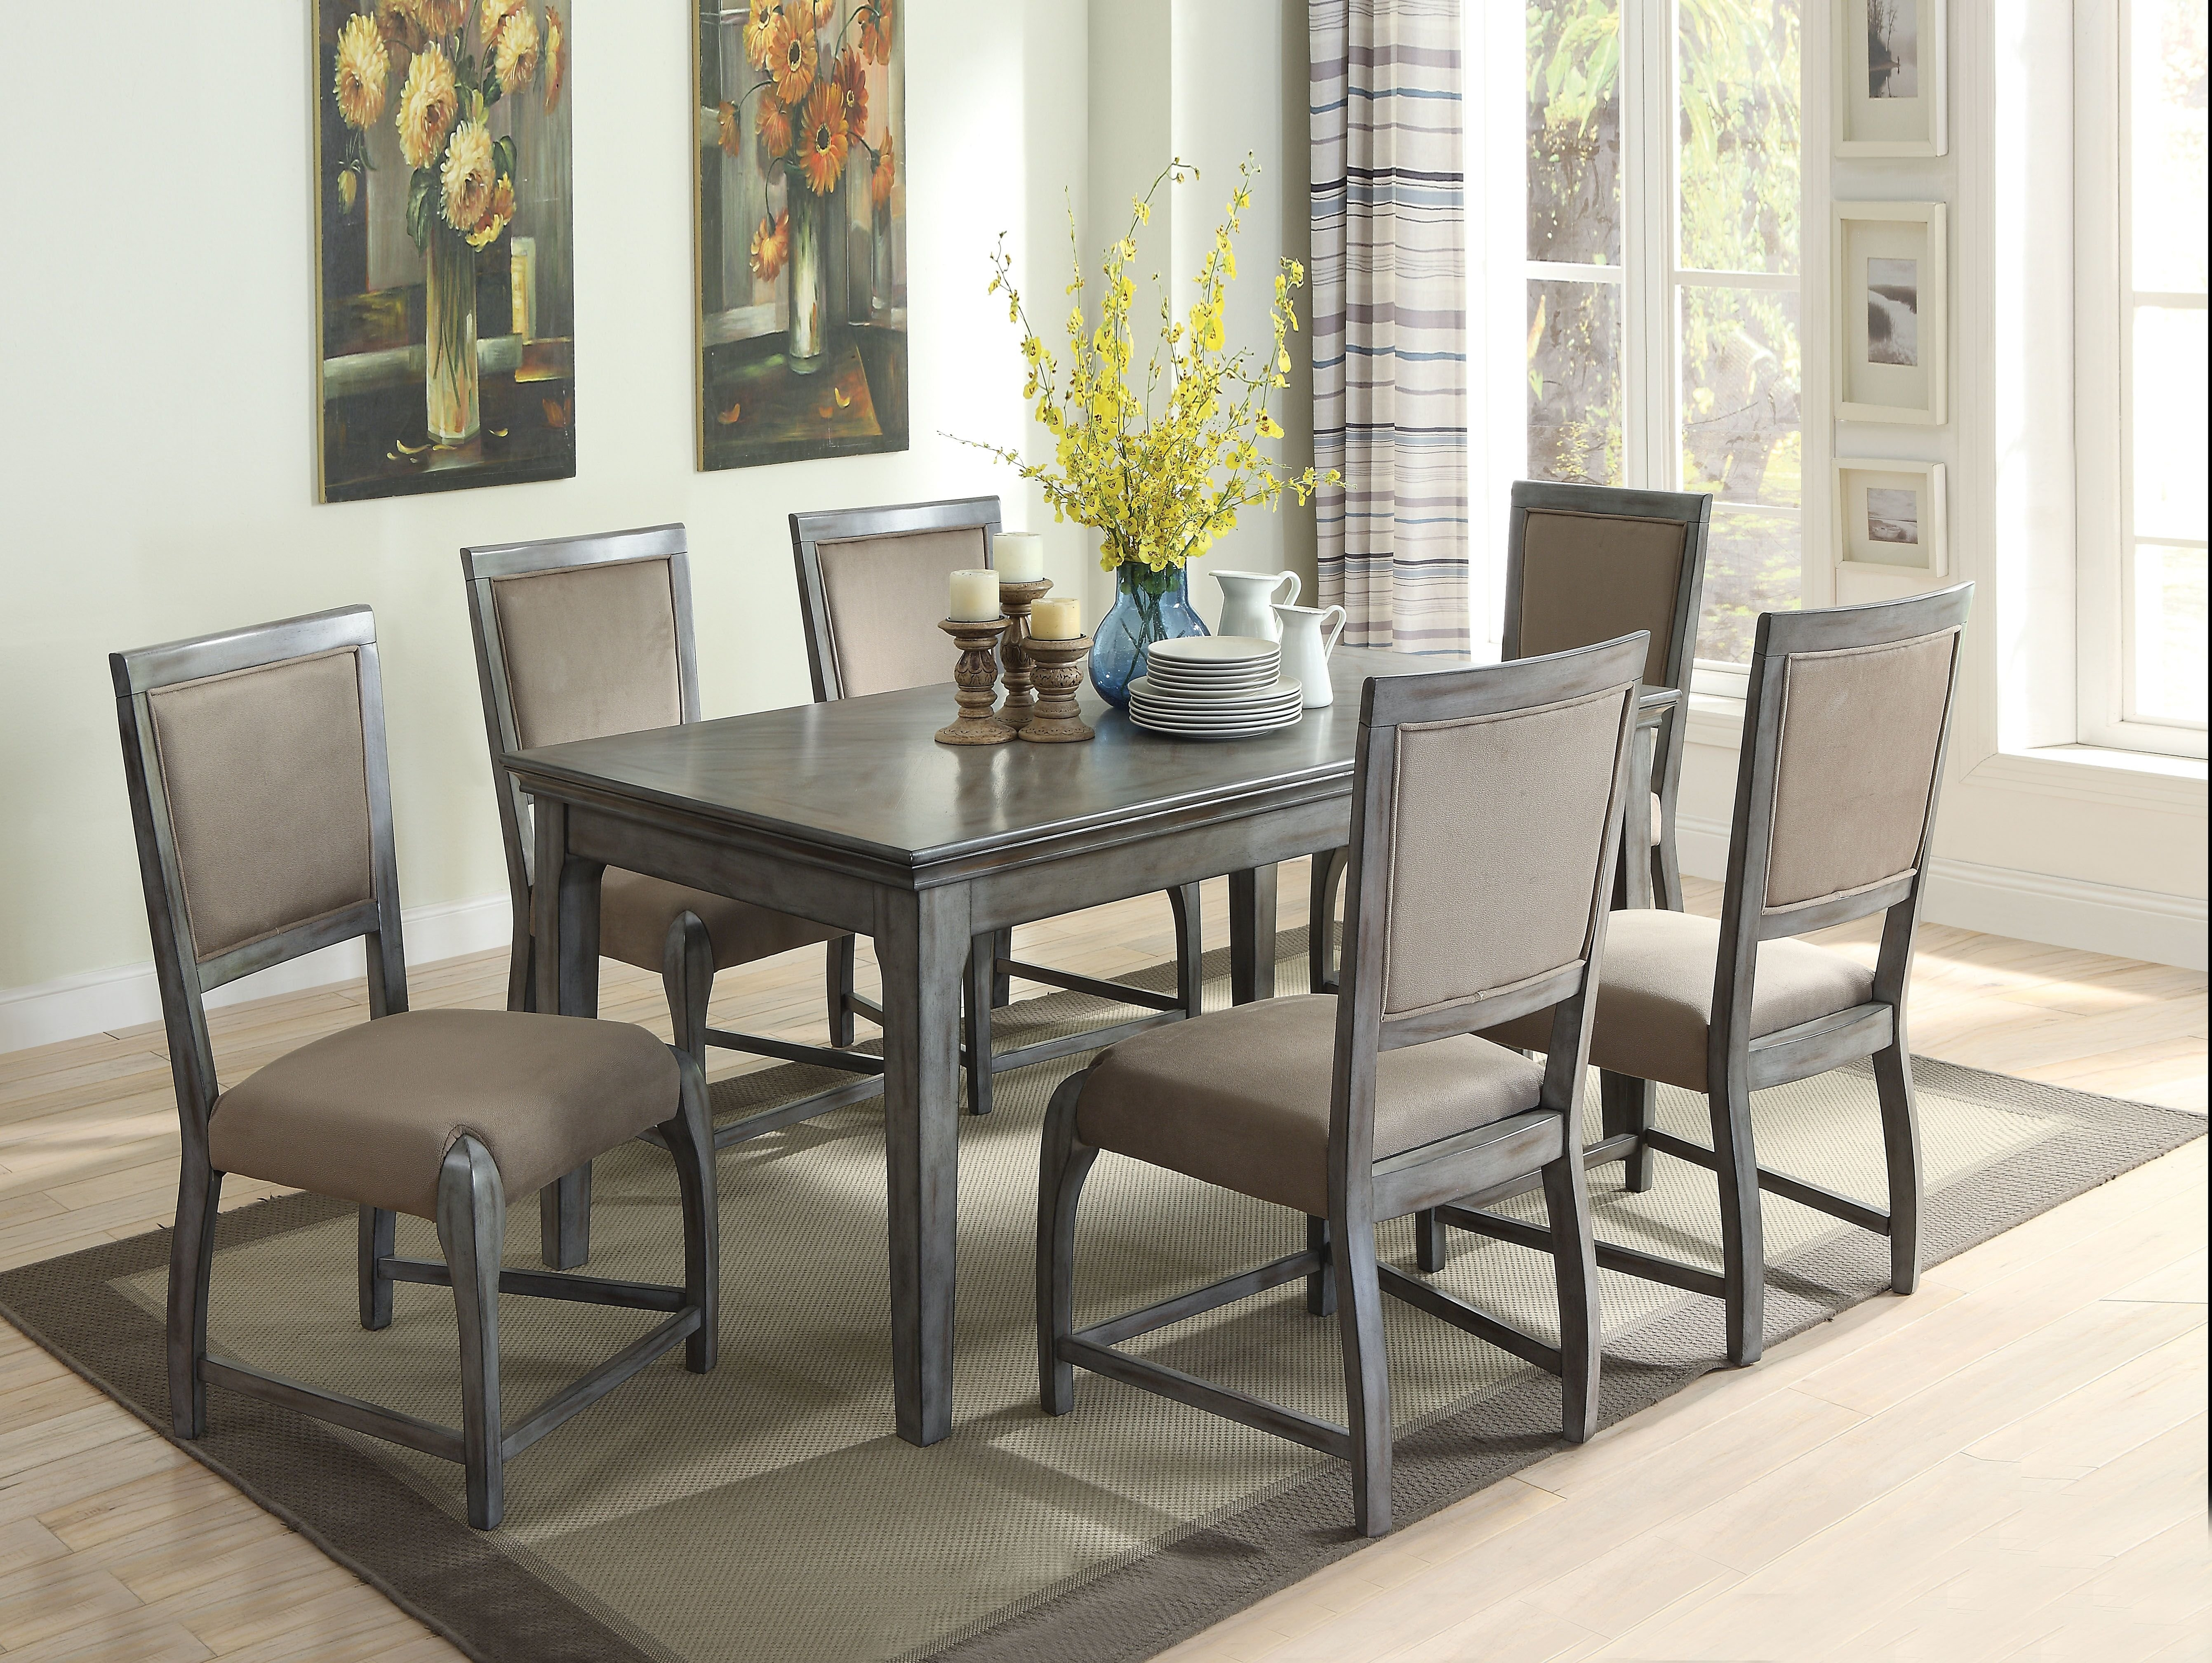 Gracie Oaks Vincenza 7 Piece Dining Set | Wayfair With Regard To Current Walden 7 Piece Extension Dining Sets (Image 3 of 20)